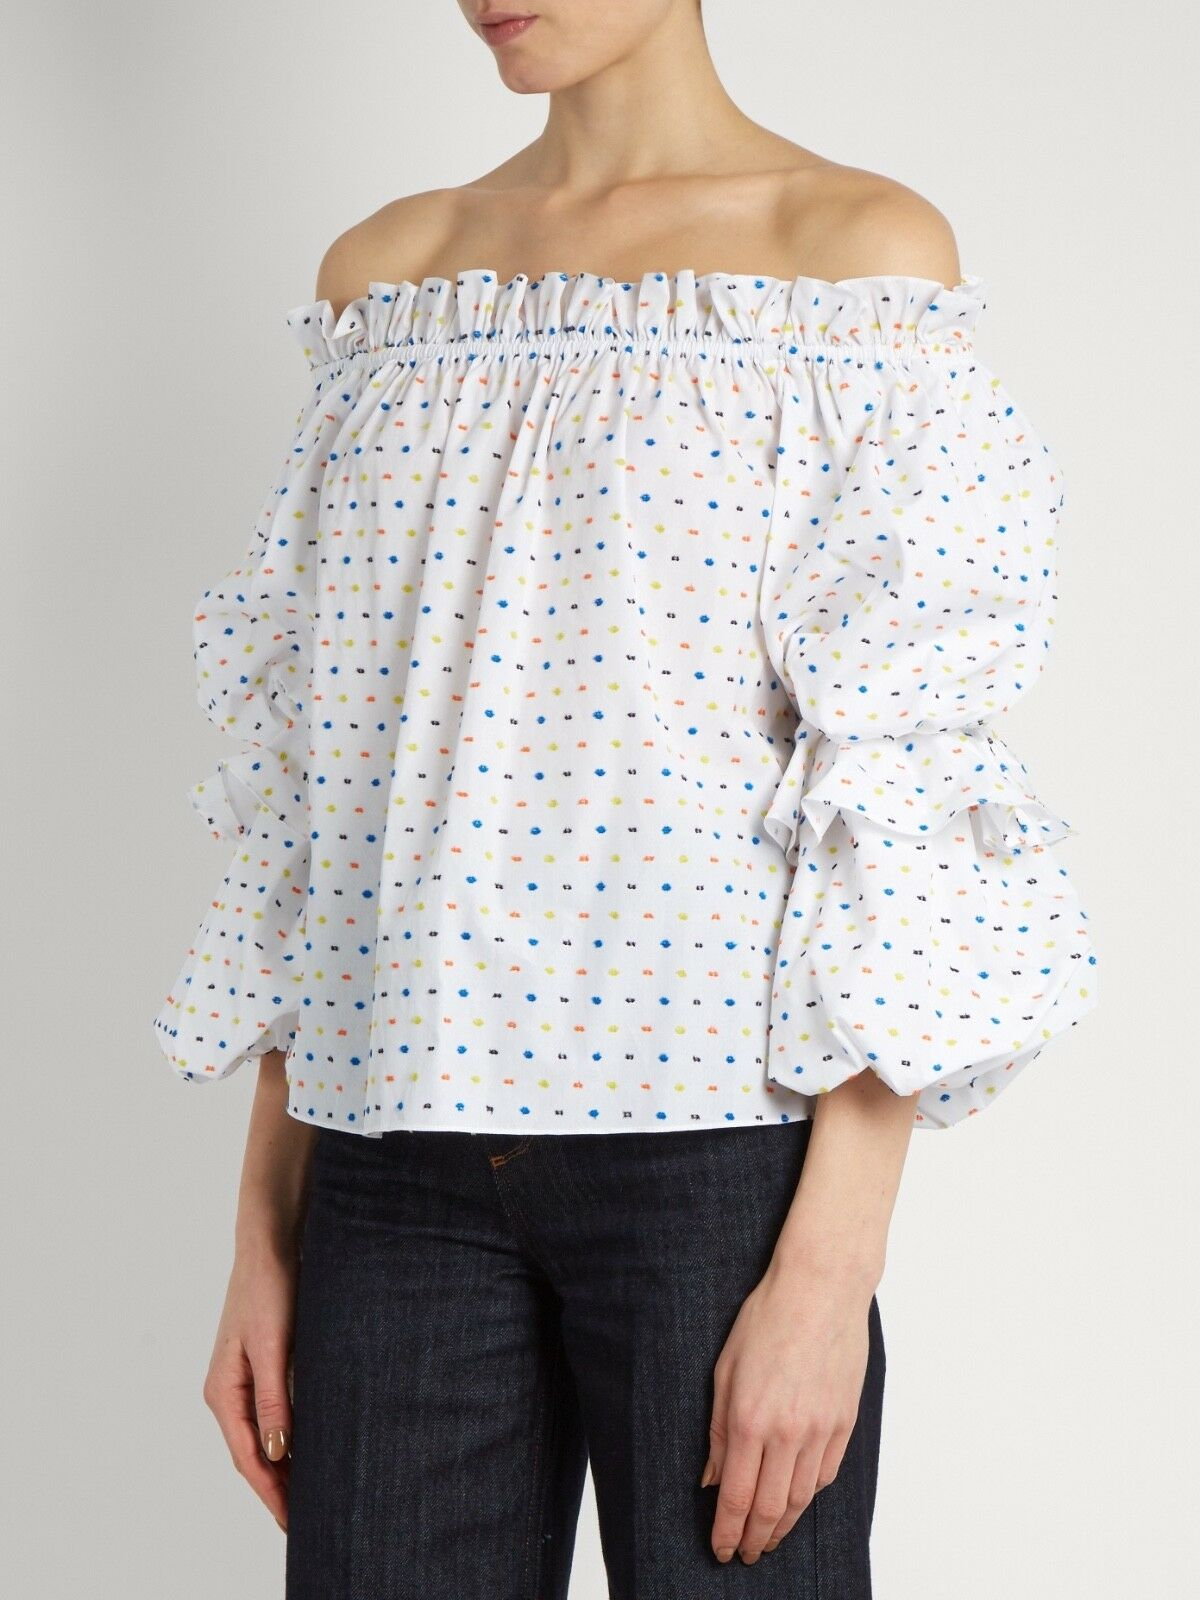 Caroline Constas Gia Off The Shoulder Top in Weiß Größe XS